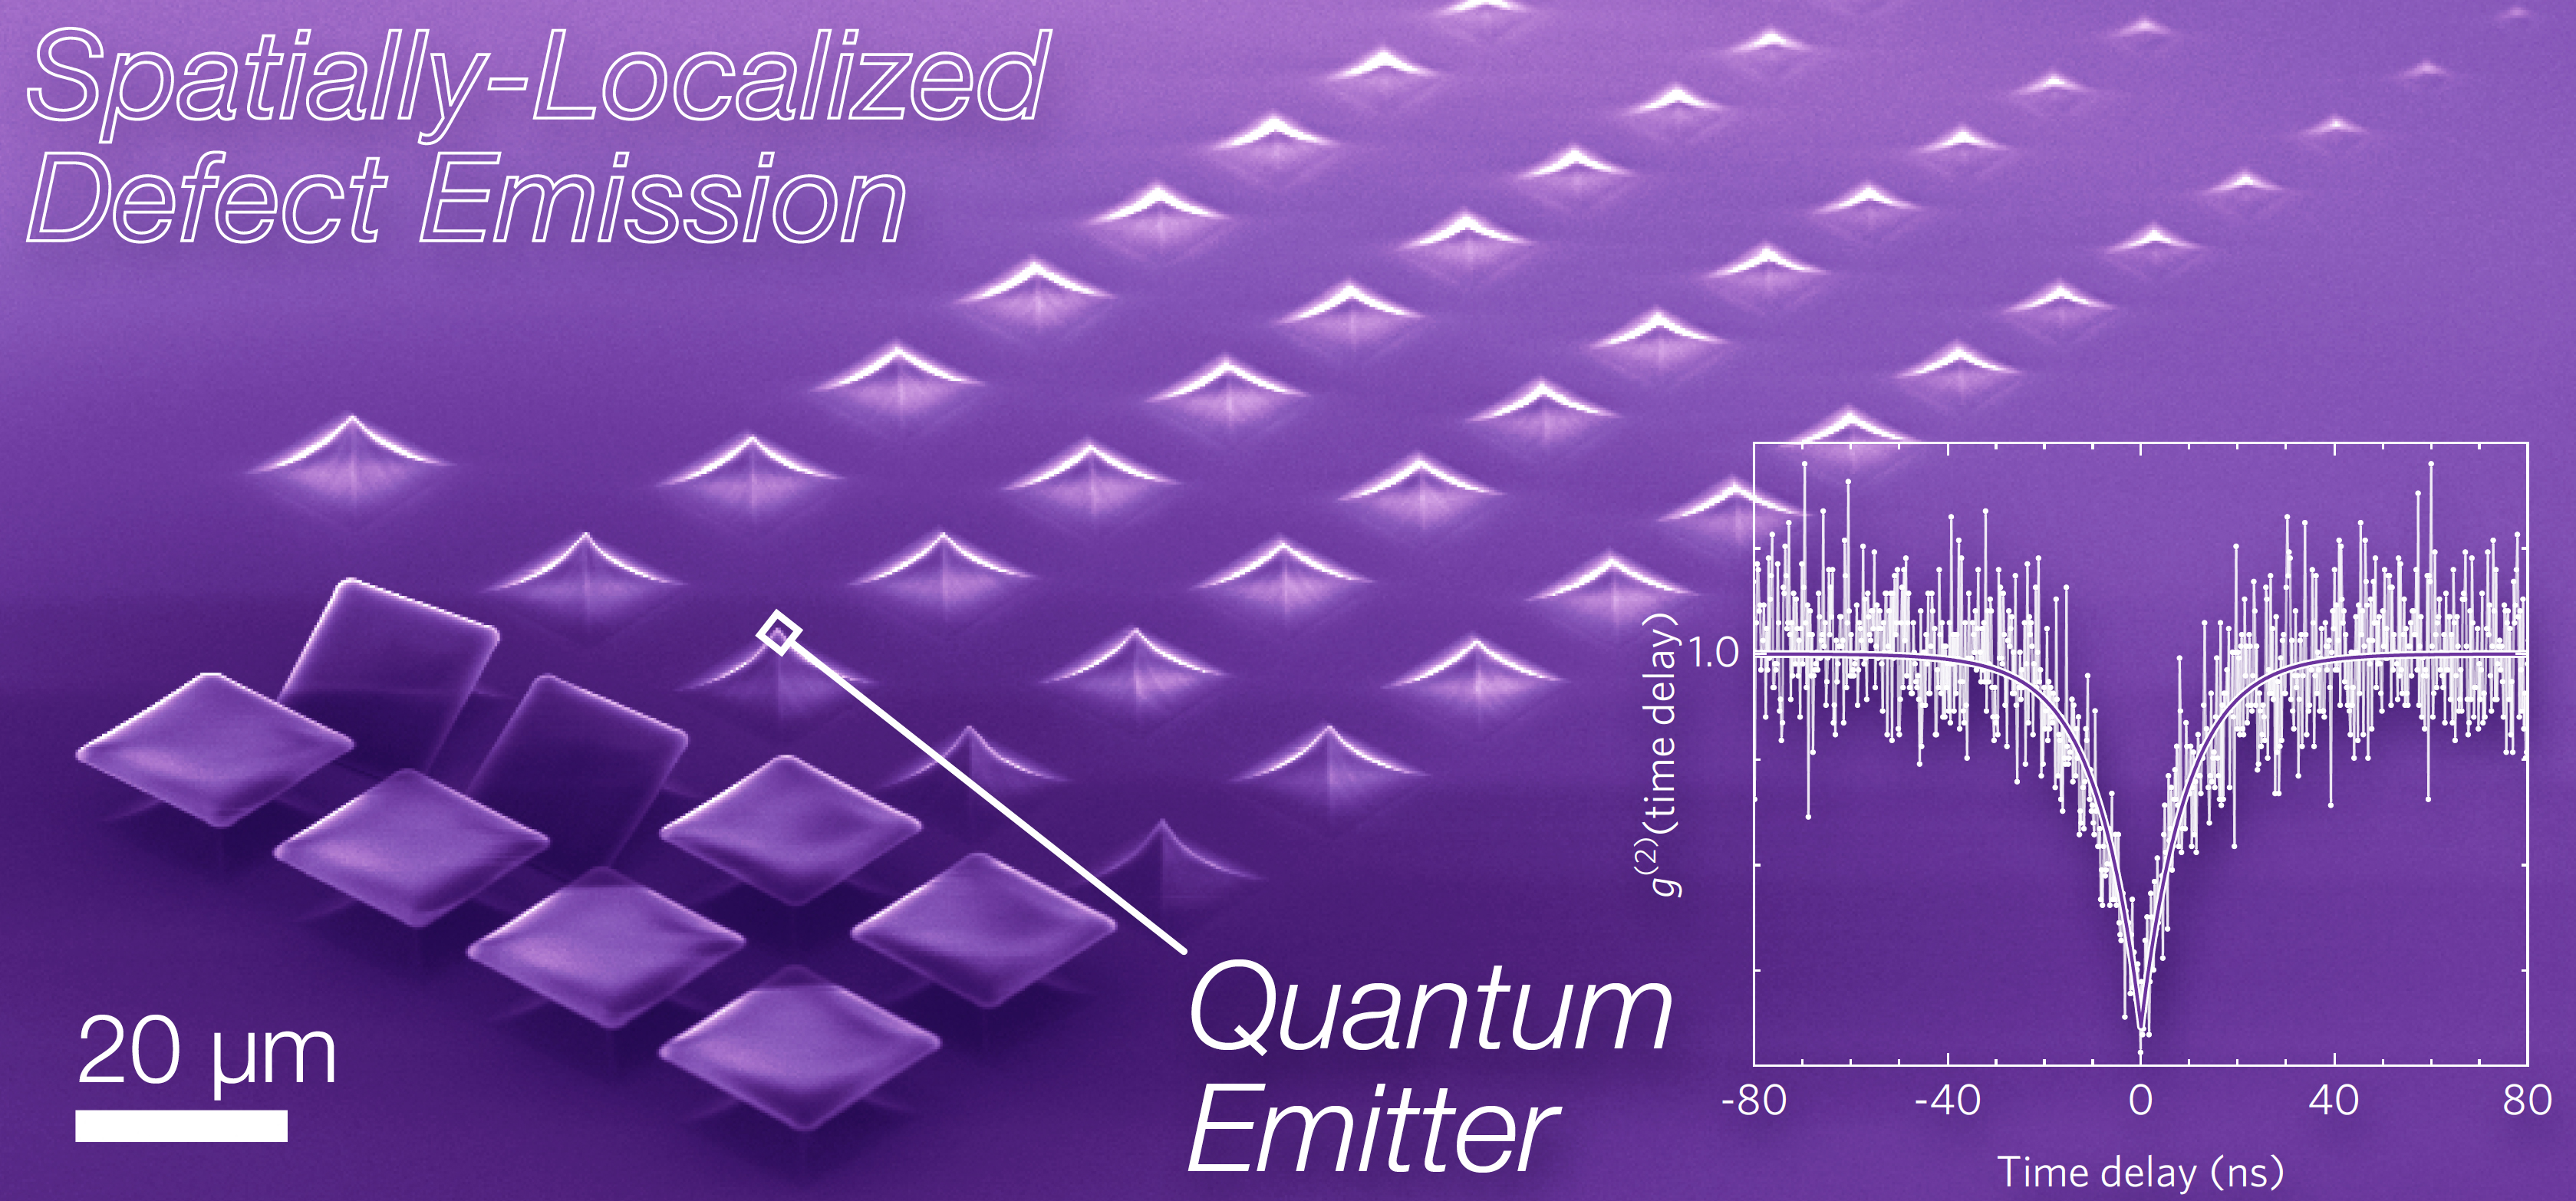 Purple graphic of spatially-localized defect emission looking like a keyboard with a graph to the right.